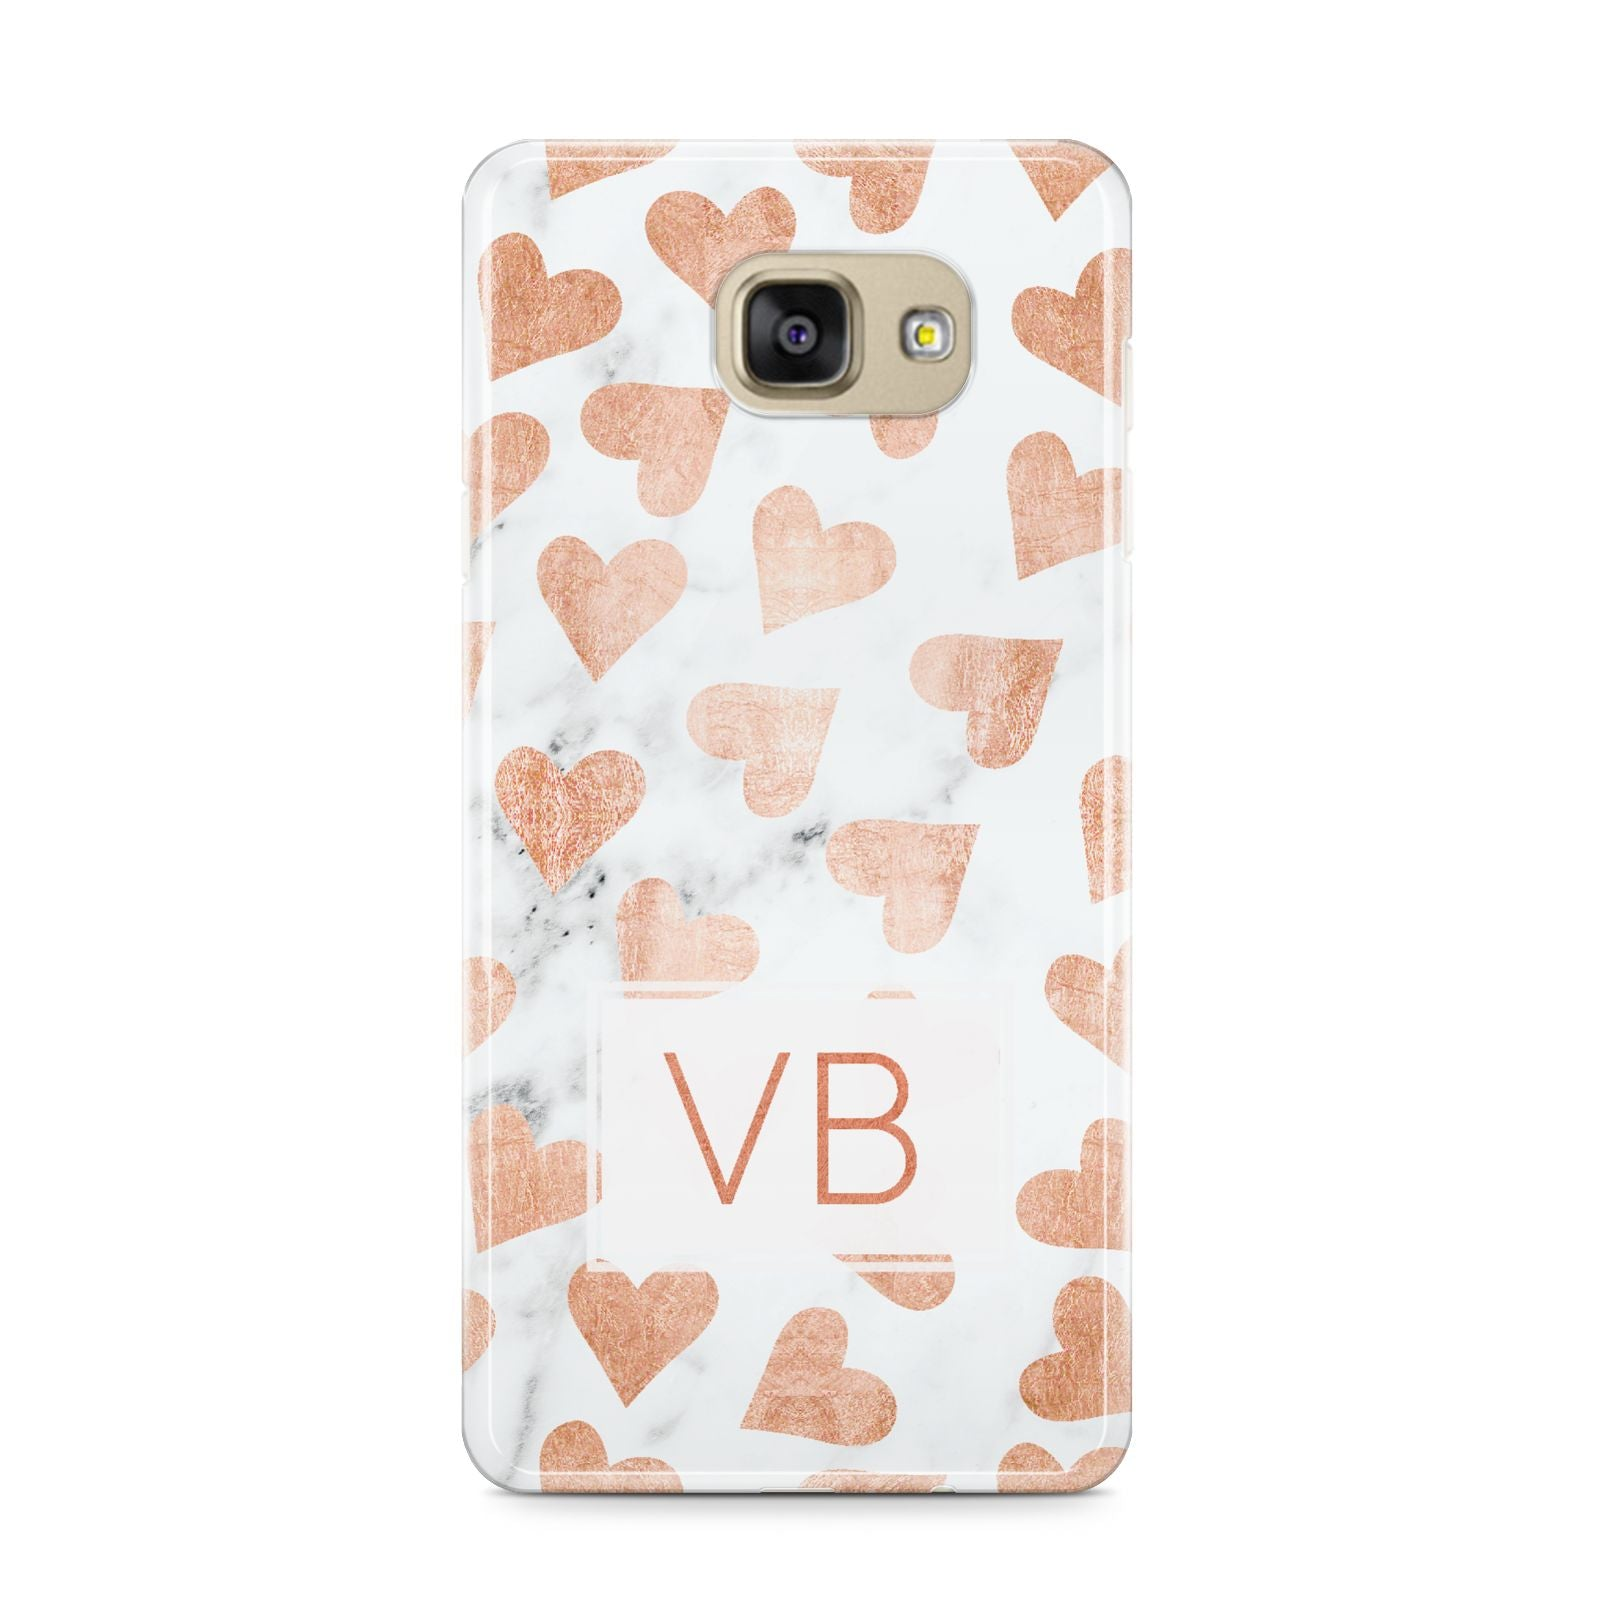 Personalised Heart Initialled Marble Samsung Galaxy A9 2016 Case on gold phone